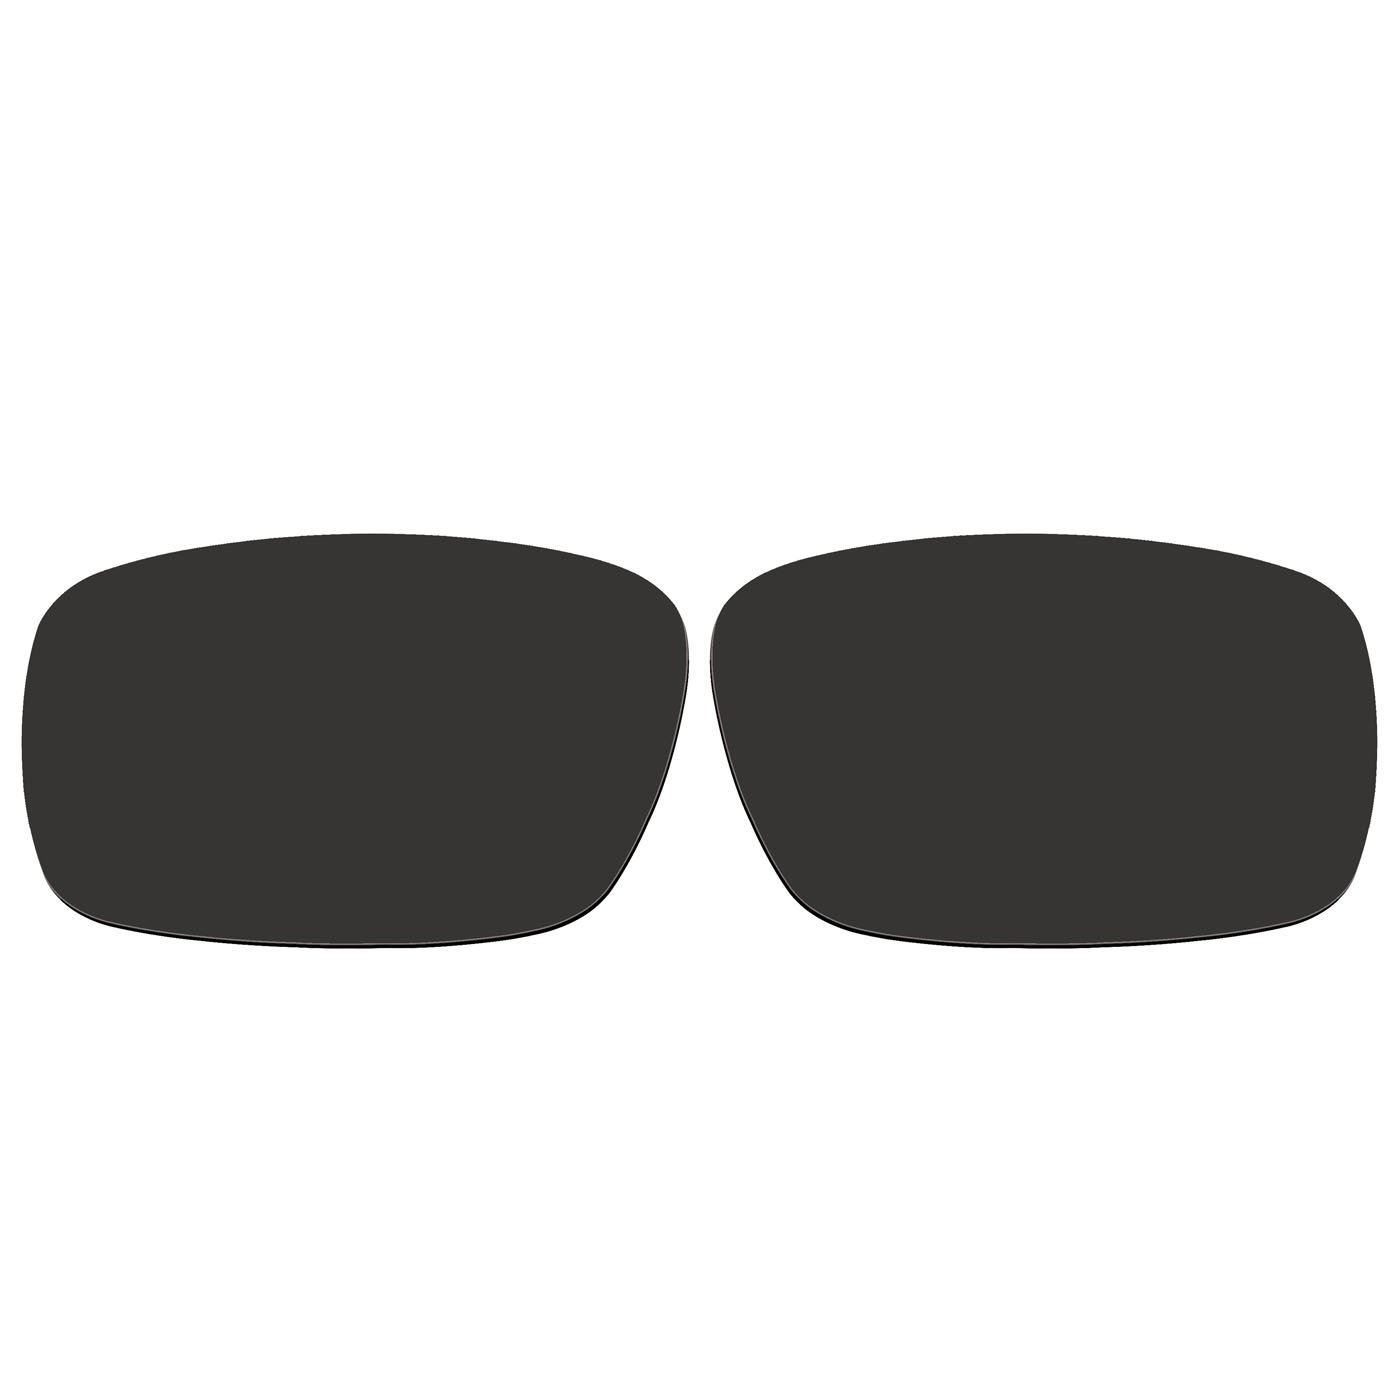 ACOMPATIBLE Replacement Lenses for Oakley Crankshaft Sunglasses OO9239